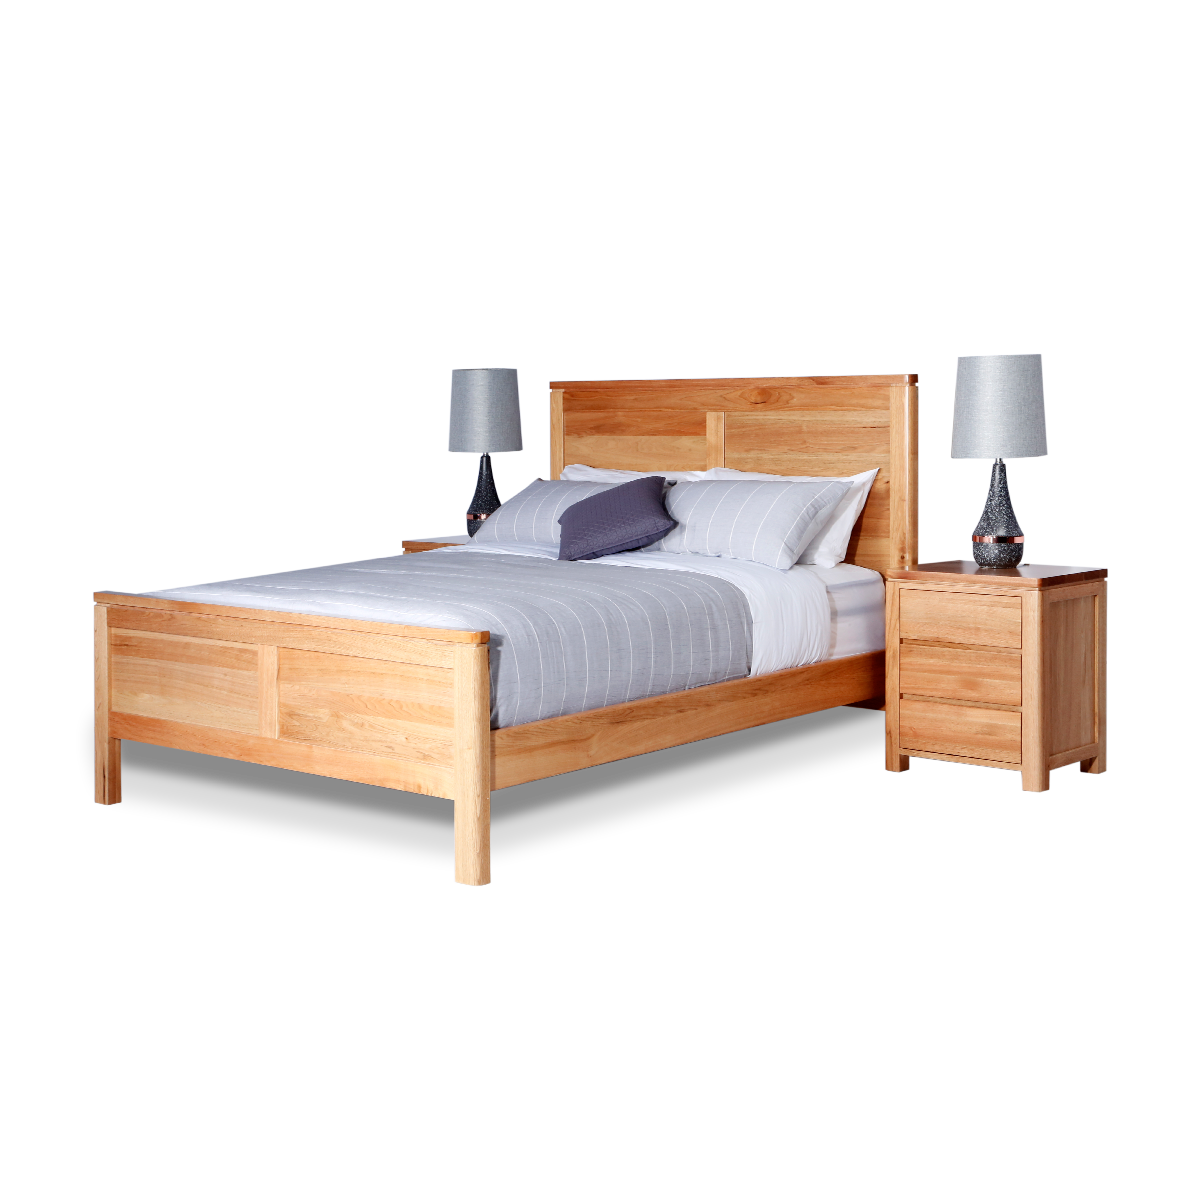 Orlando Bedroom Furniture Orlando Bed